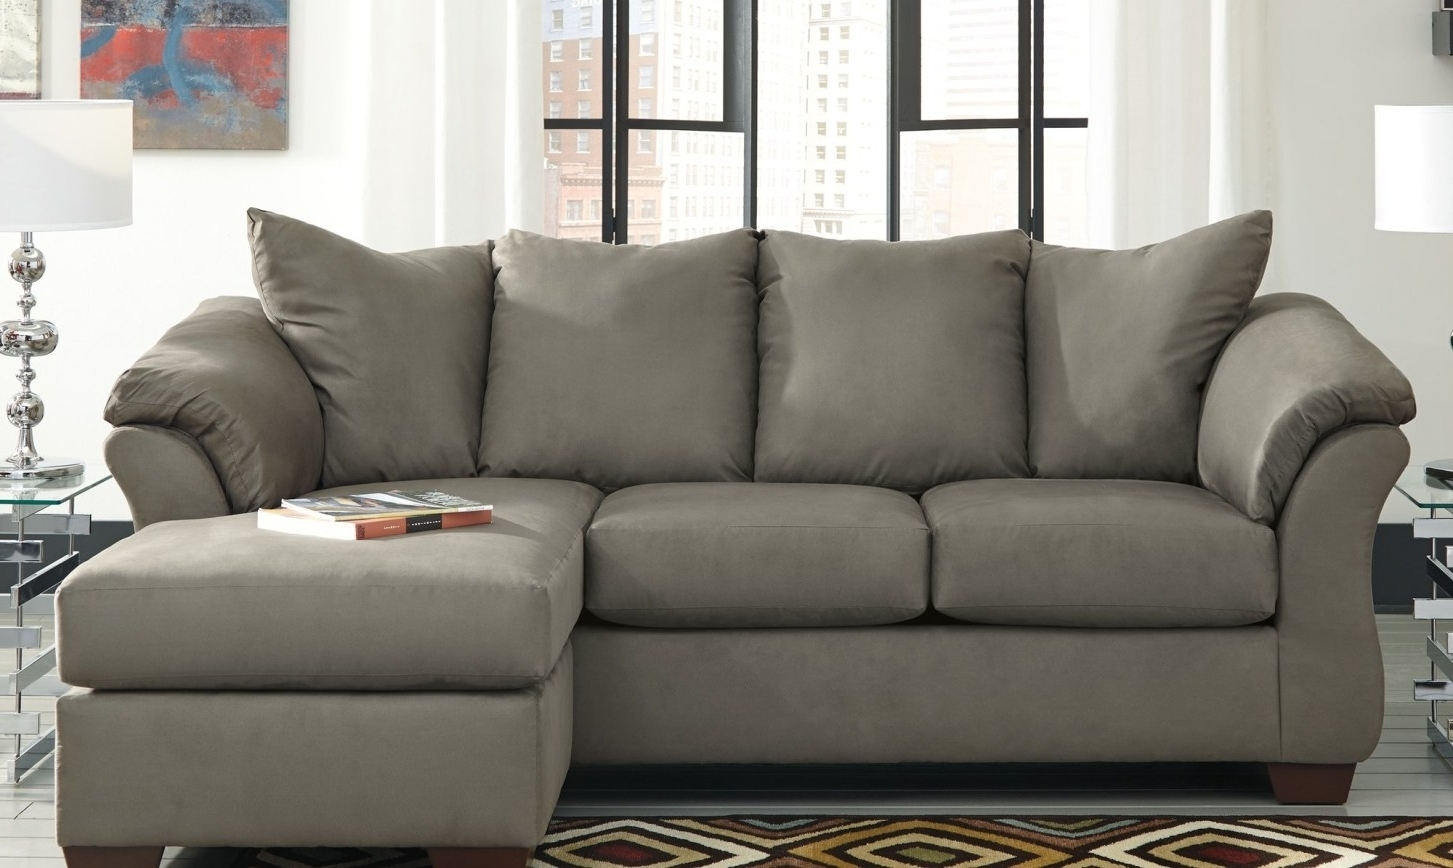 Fashionable Abbyson Sectional Sofas Intended For Stylish Abbyson Living Charlotte Dark Brown Sectional Sofa And (View 10 of 20)